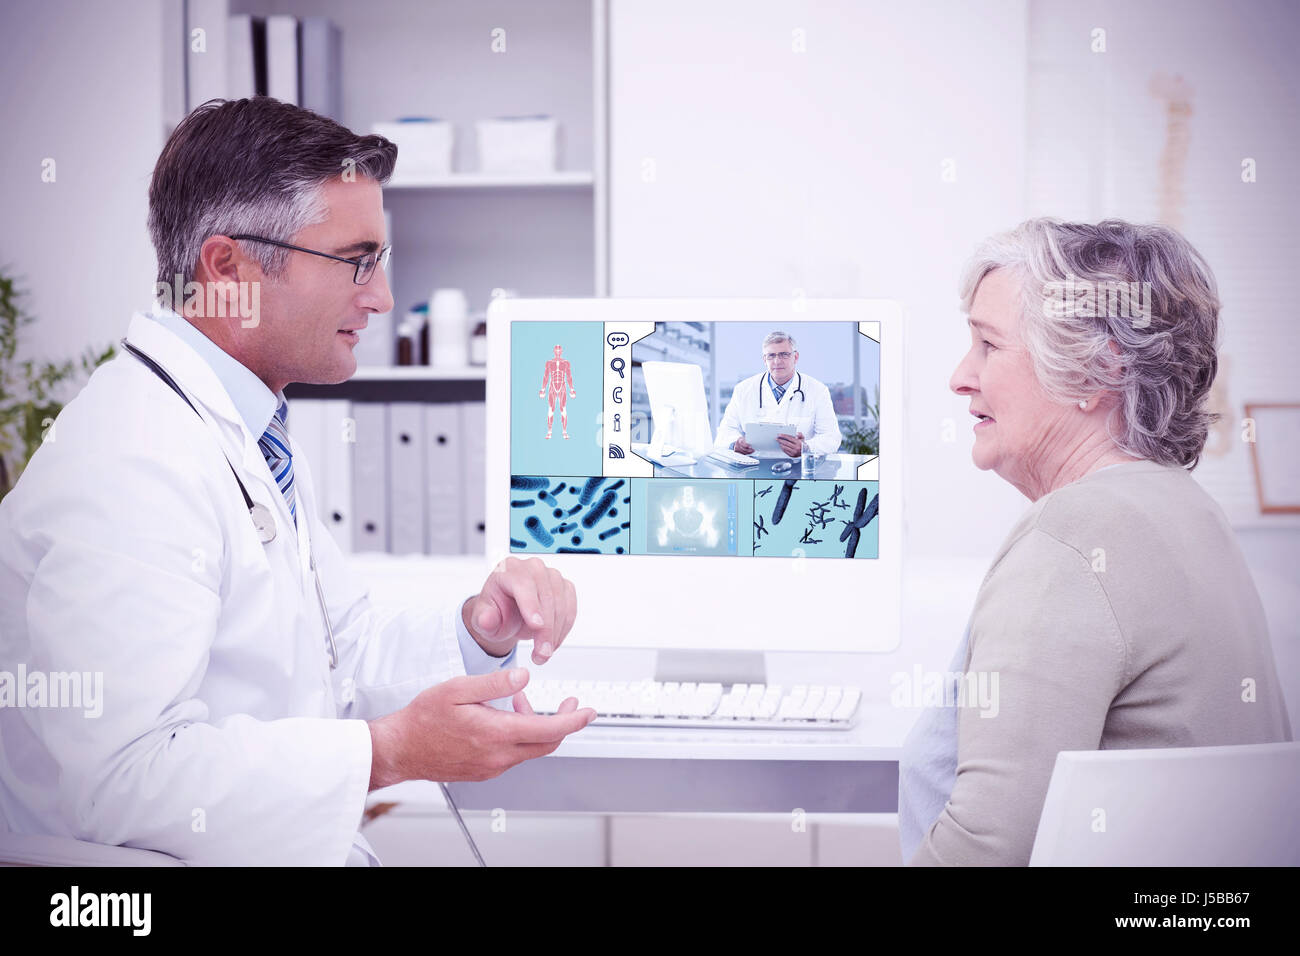 uniformed doctor against male doctor conversing with senior patient at table - Stock Image